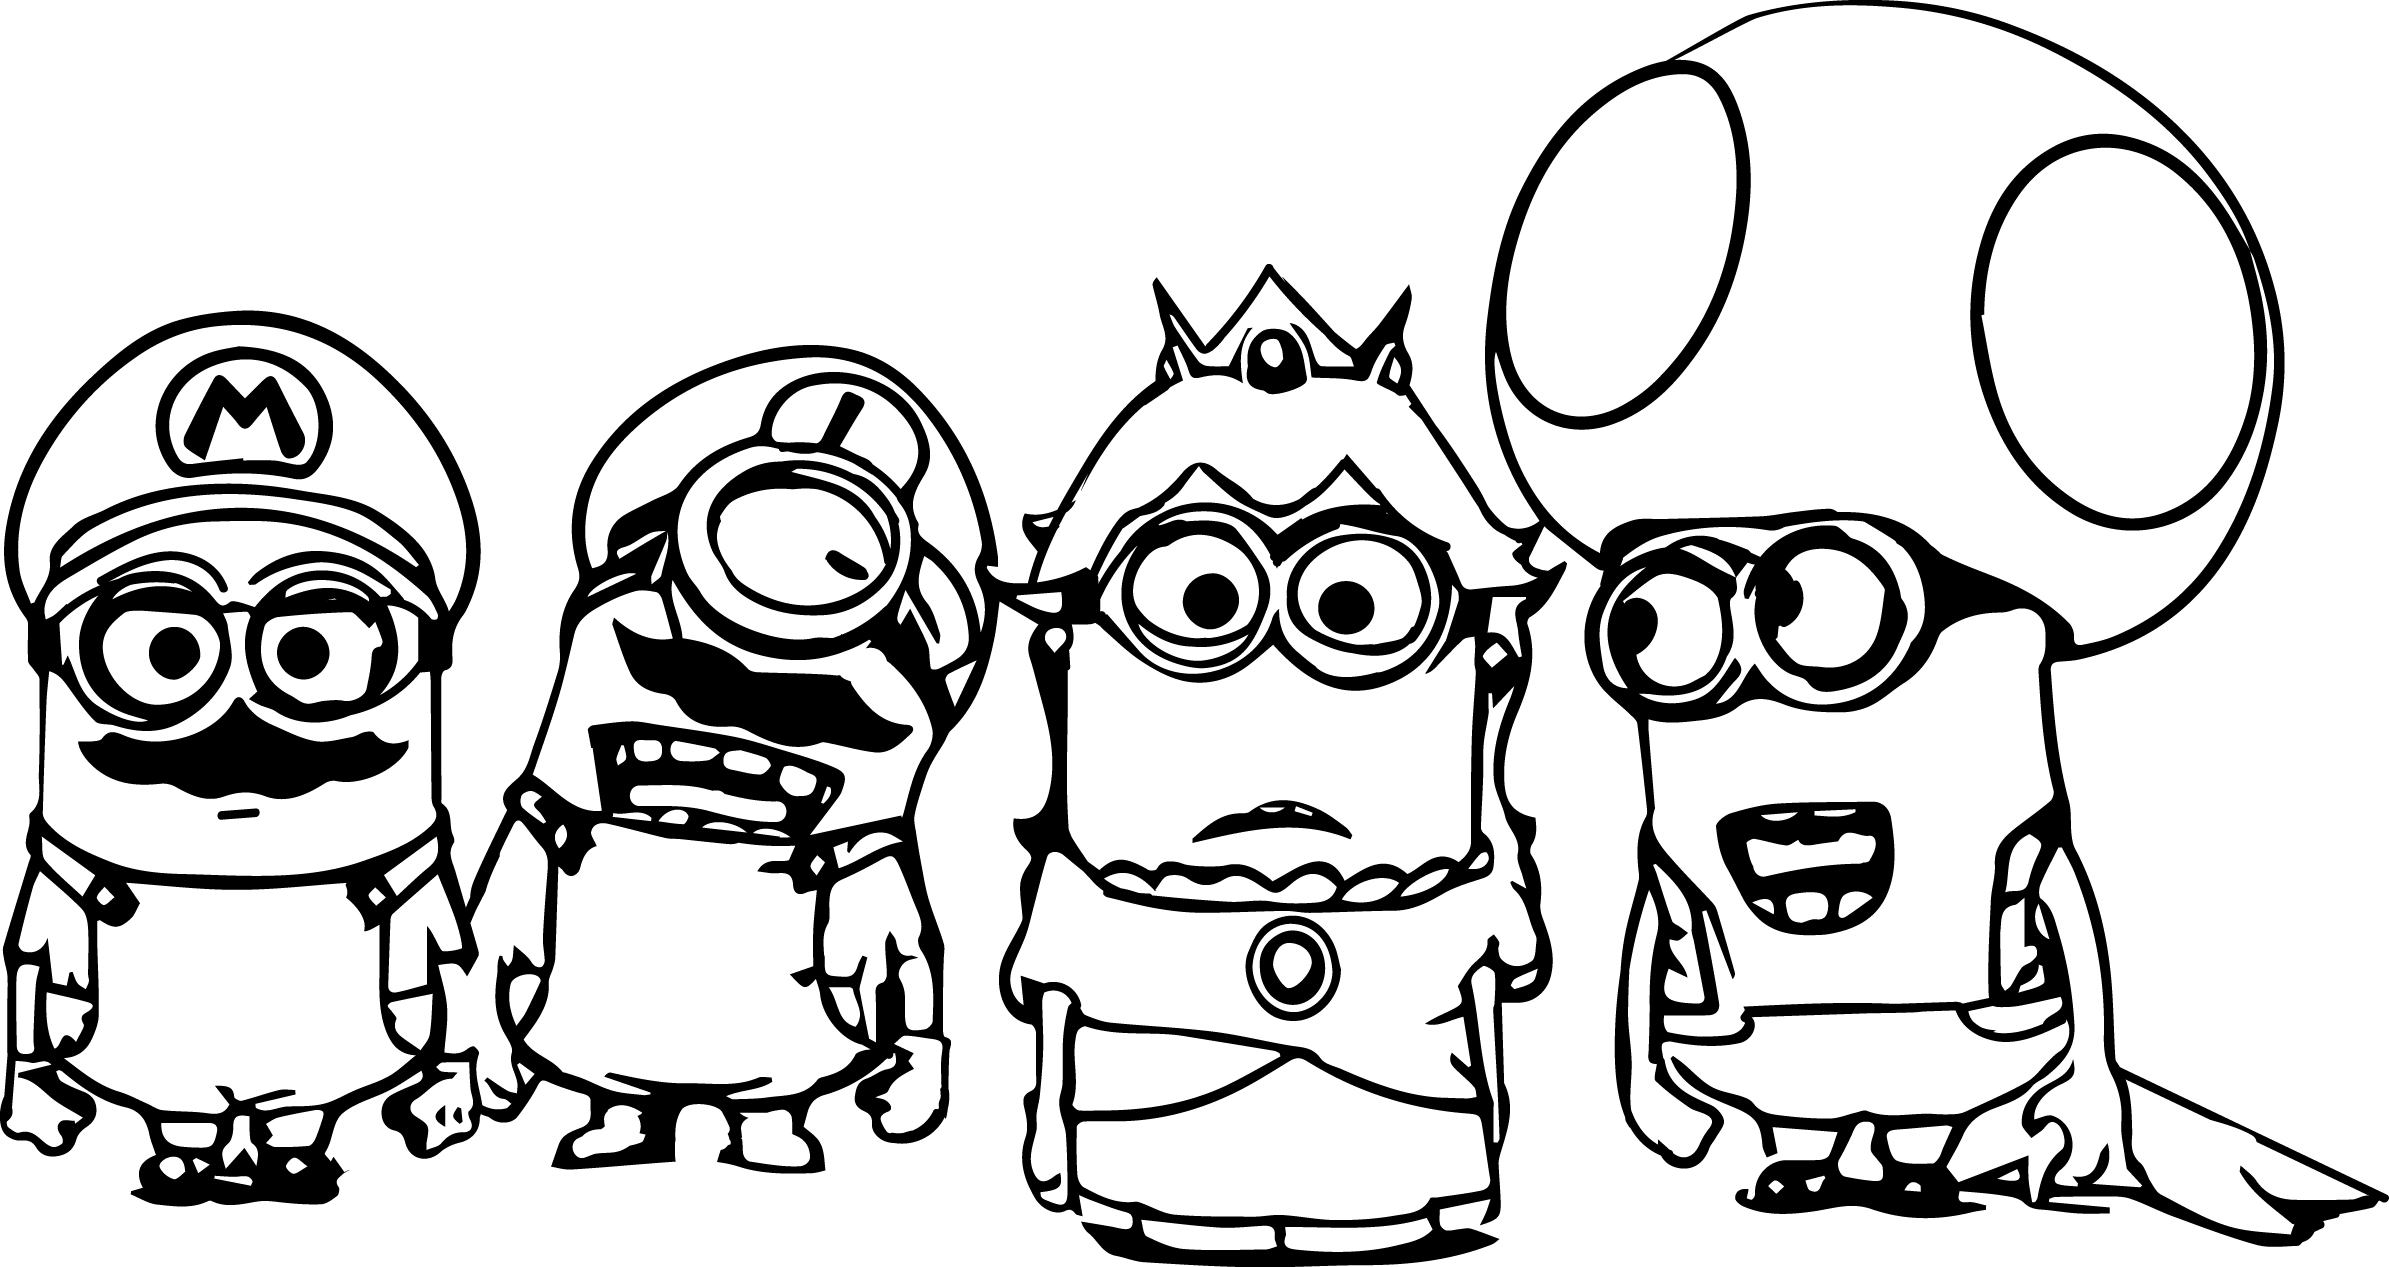 minion colouring page golf coloring pages best coloring pages for kids minion colouring page